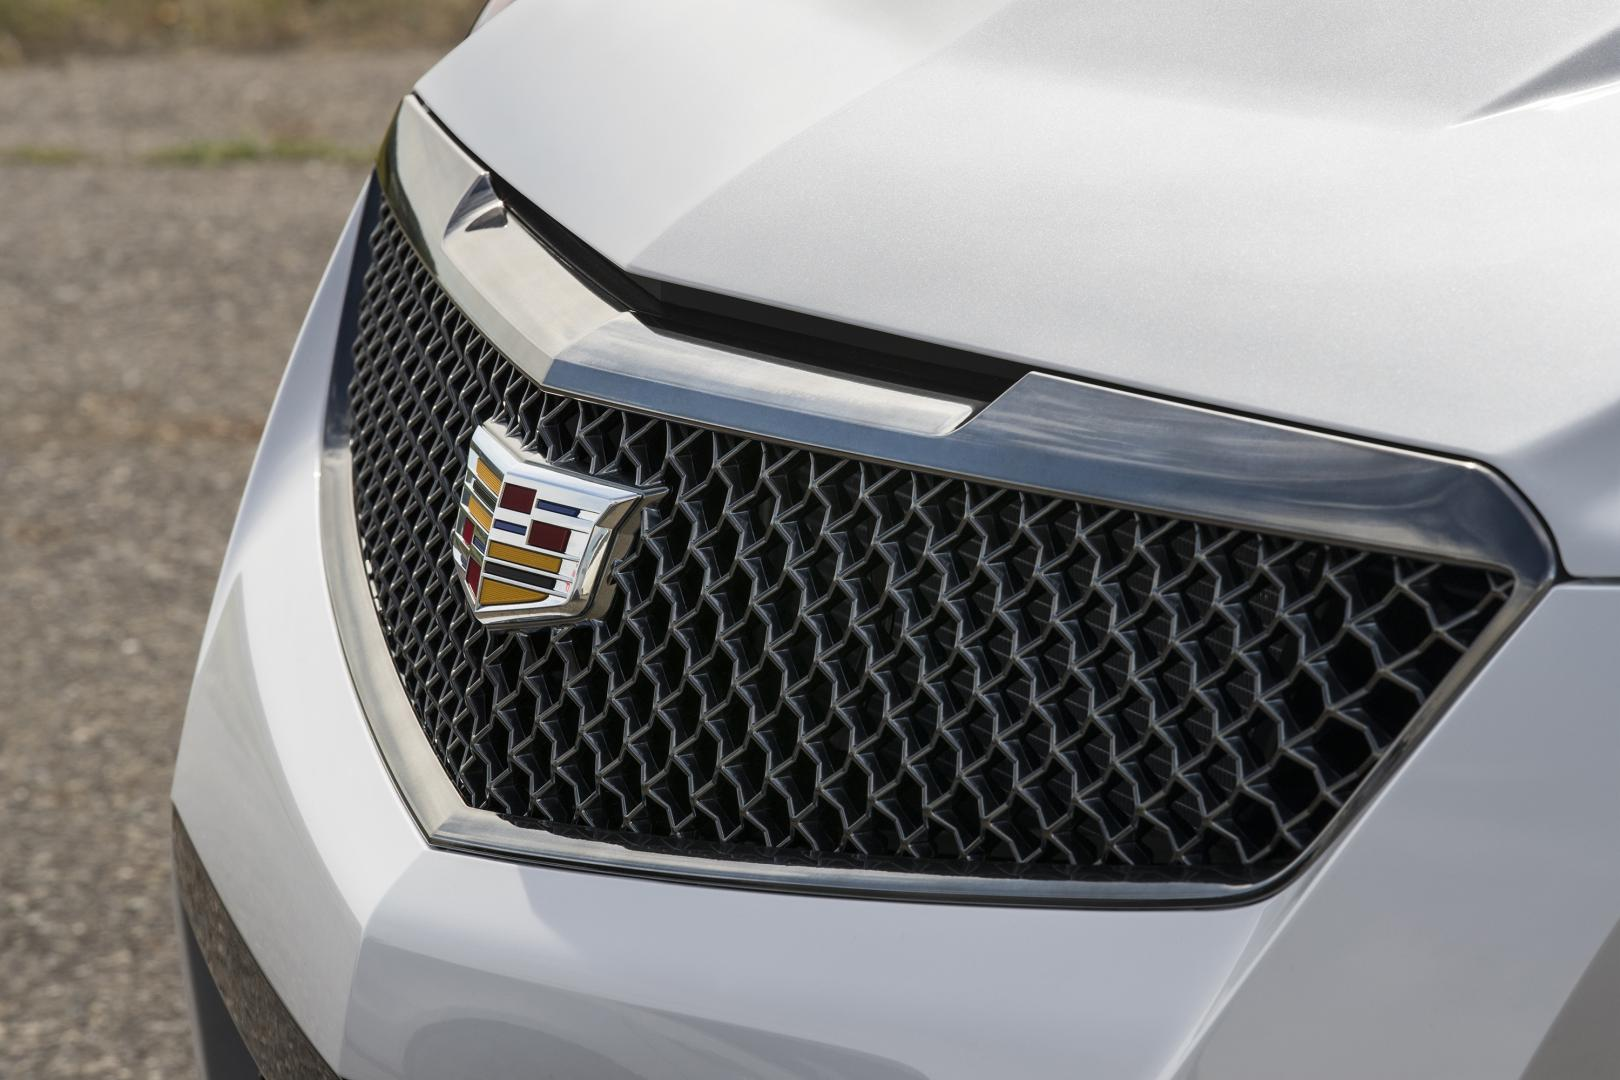 2017 Cadillac ATS-V grille